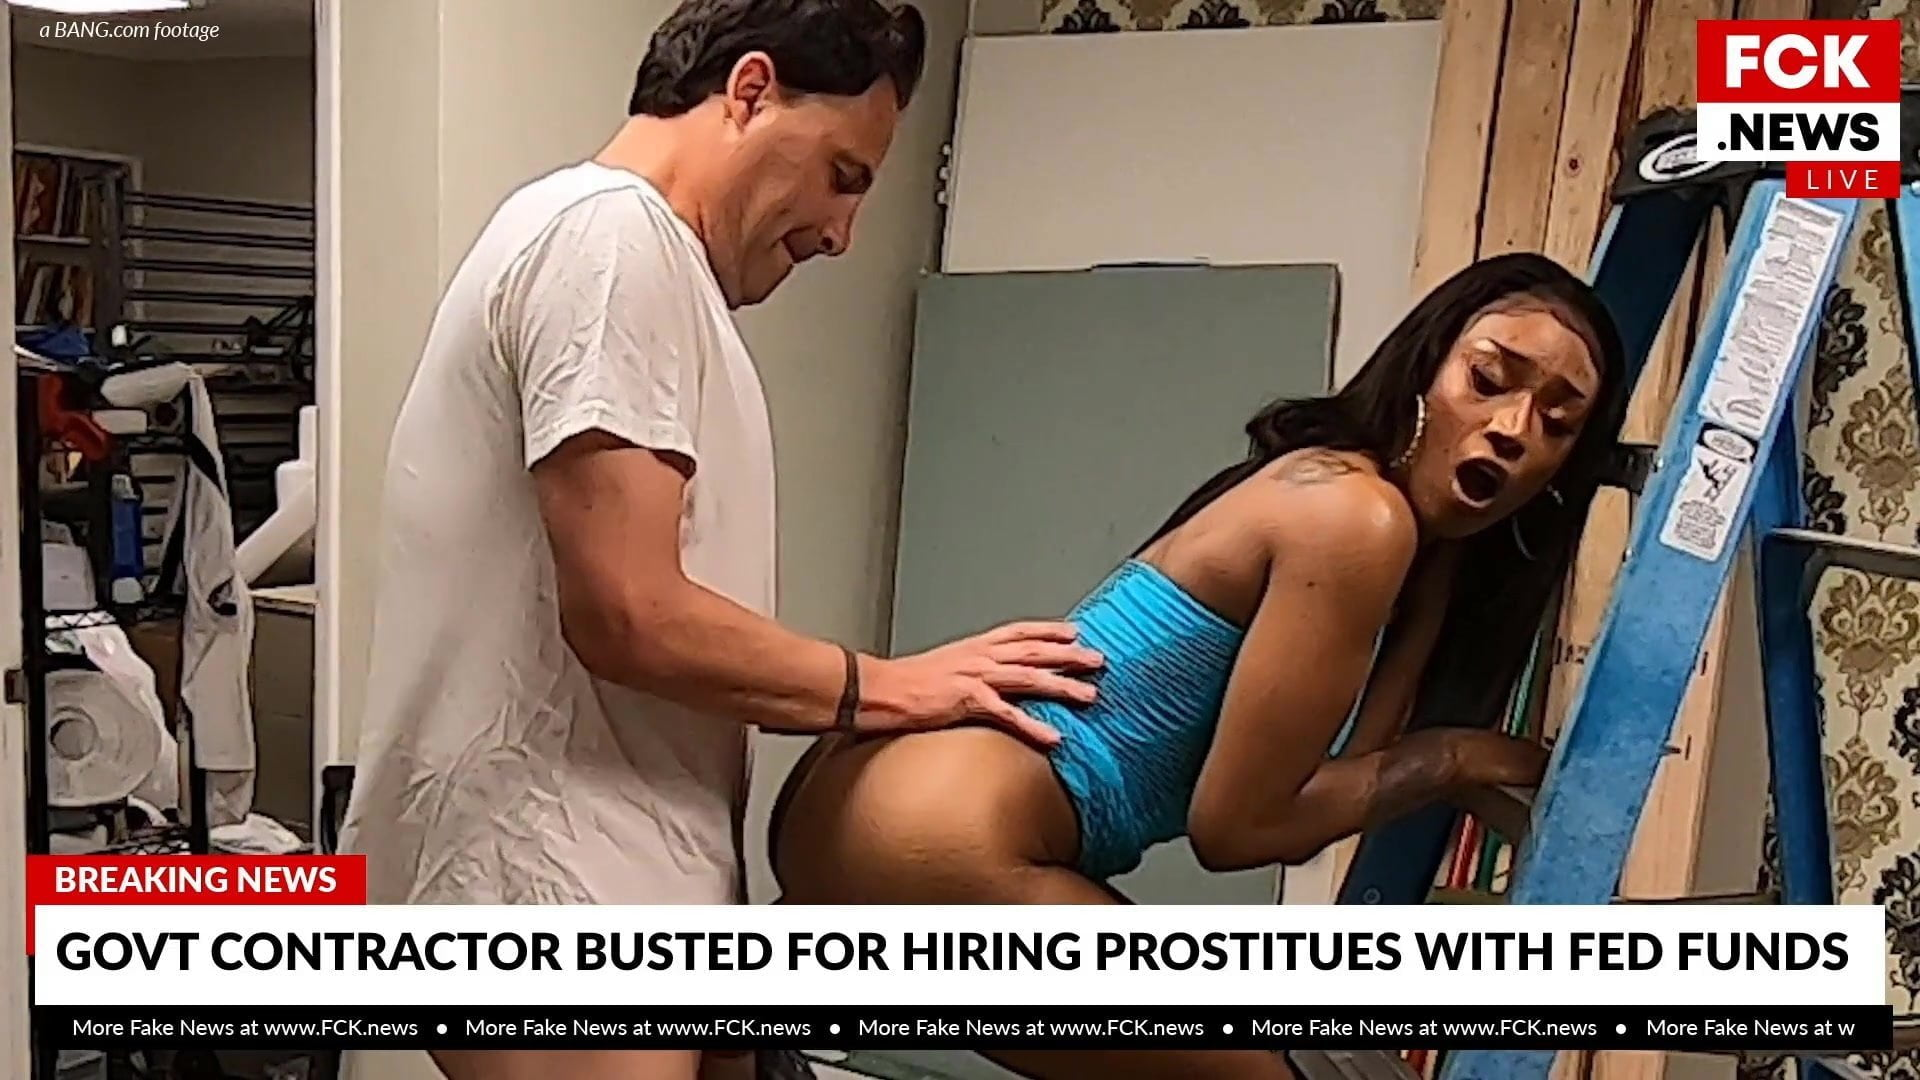 FCK Information – Contractor Caught Fucking Prostitute On Digicam